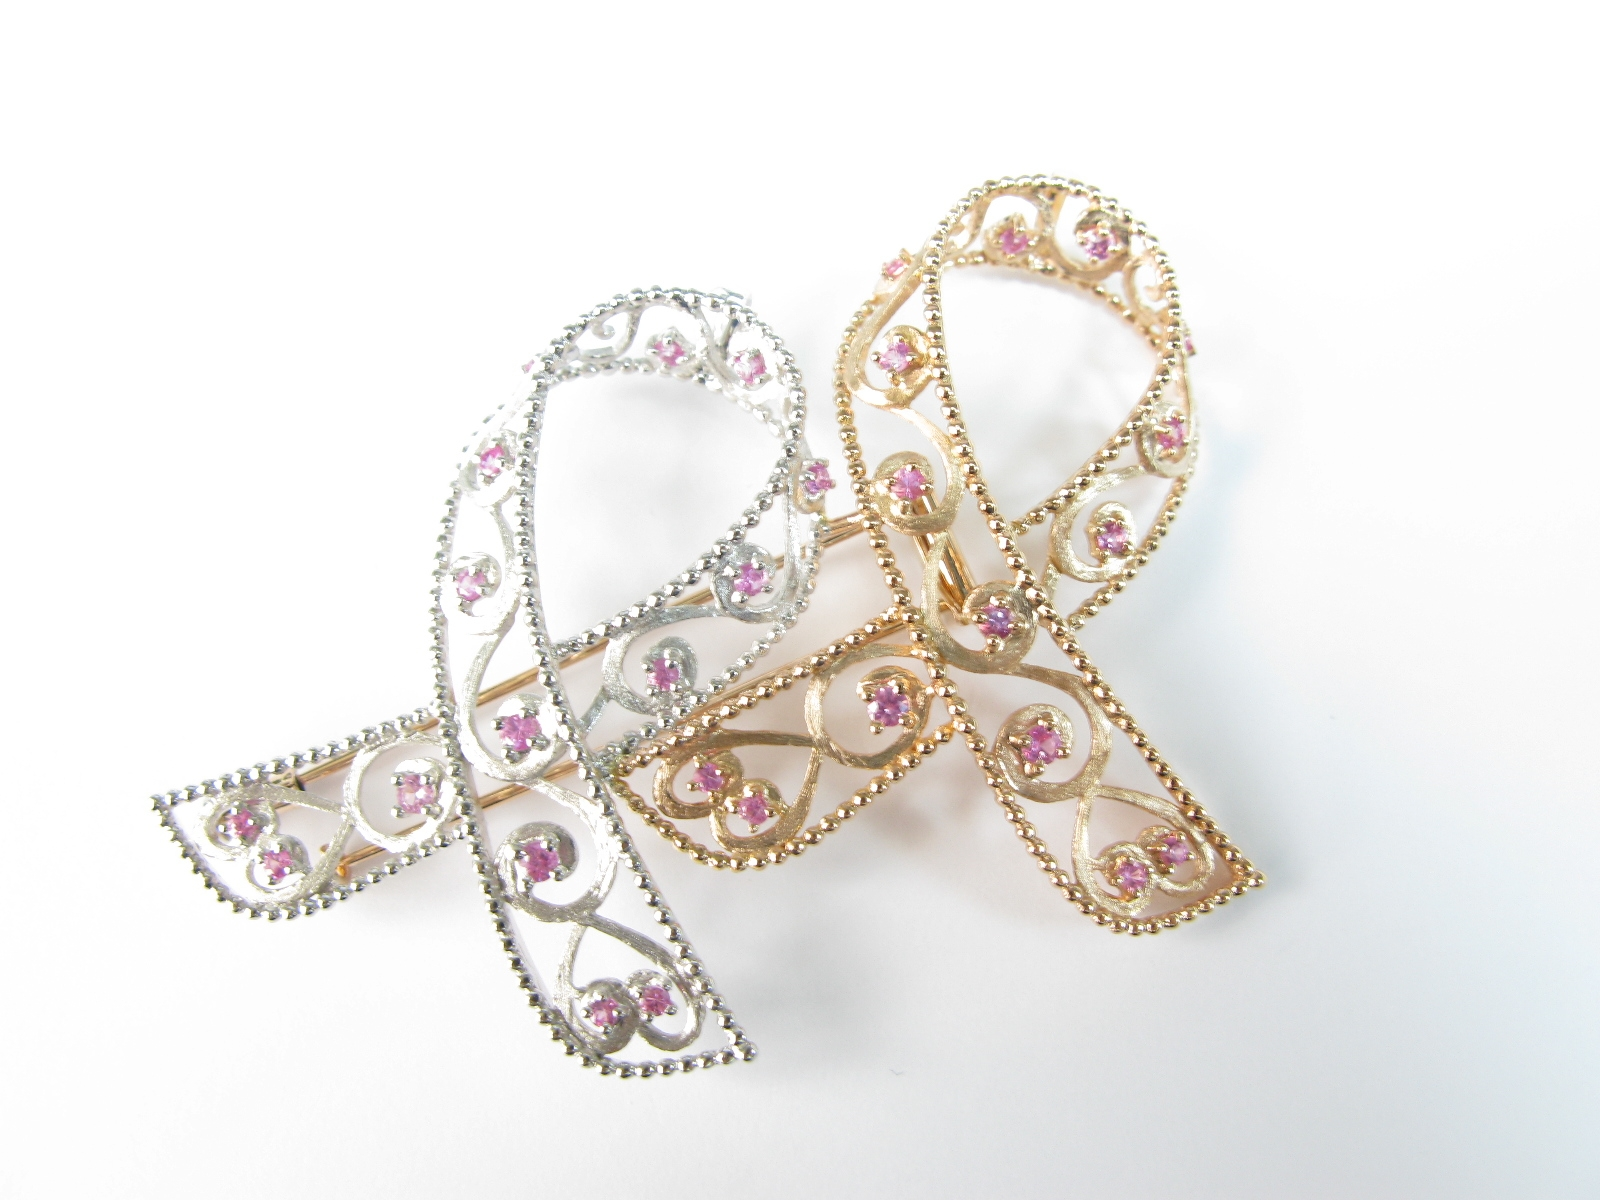 Self Photos / Files - 18K Rose Gold & Silver Sapphire Brooch